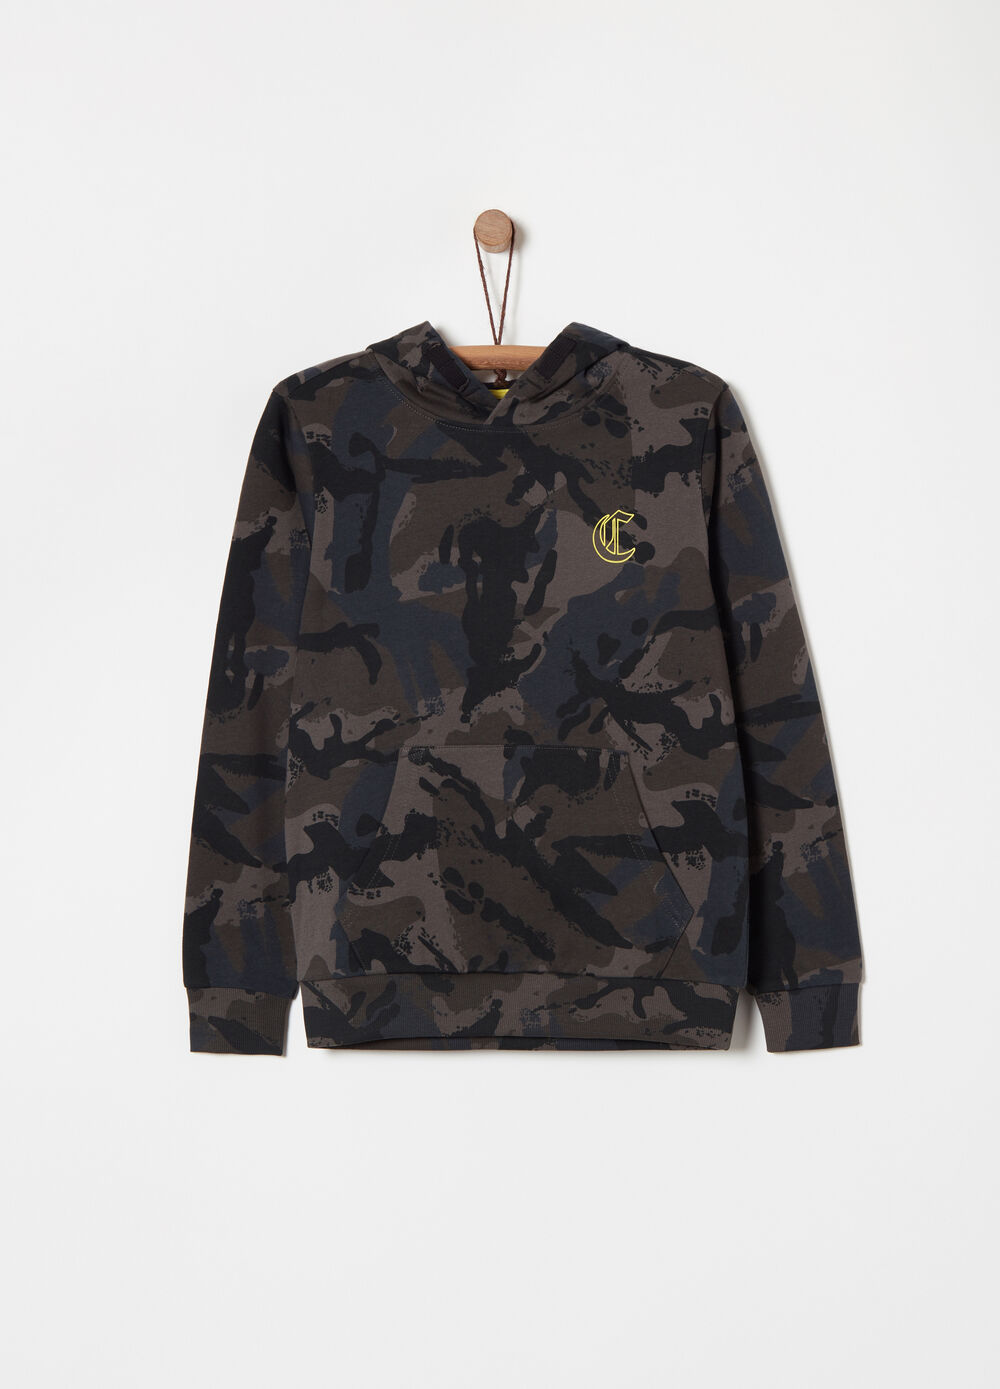 French terry camouflage sweatshirt with print